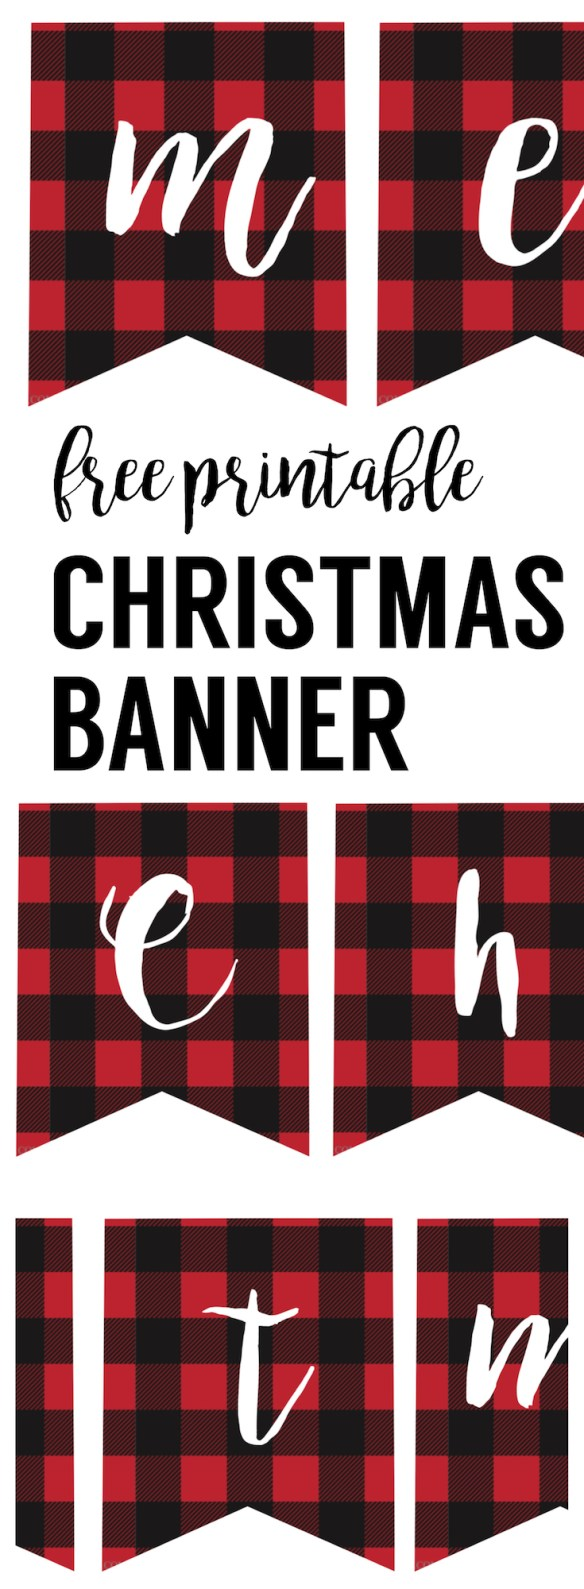 Geeky image with printable christmas banner